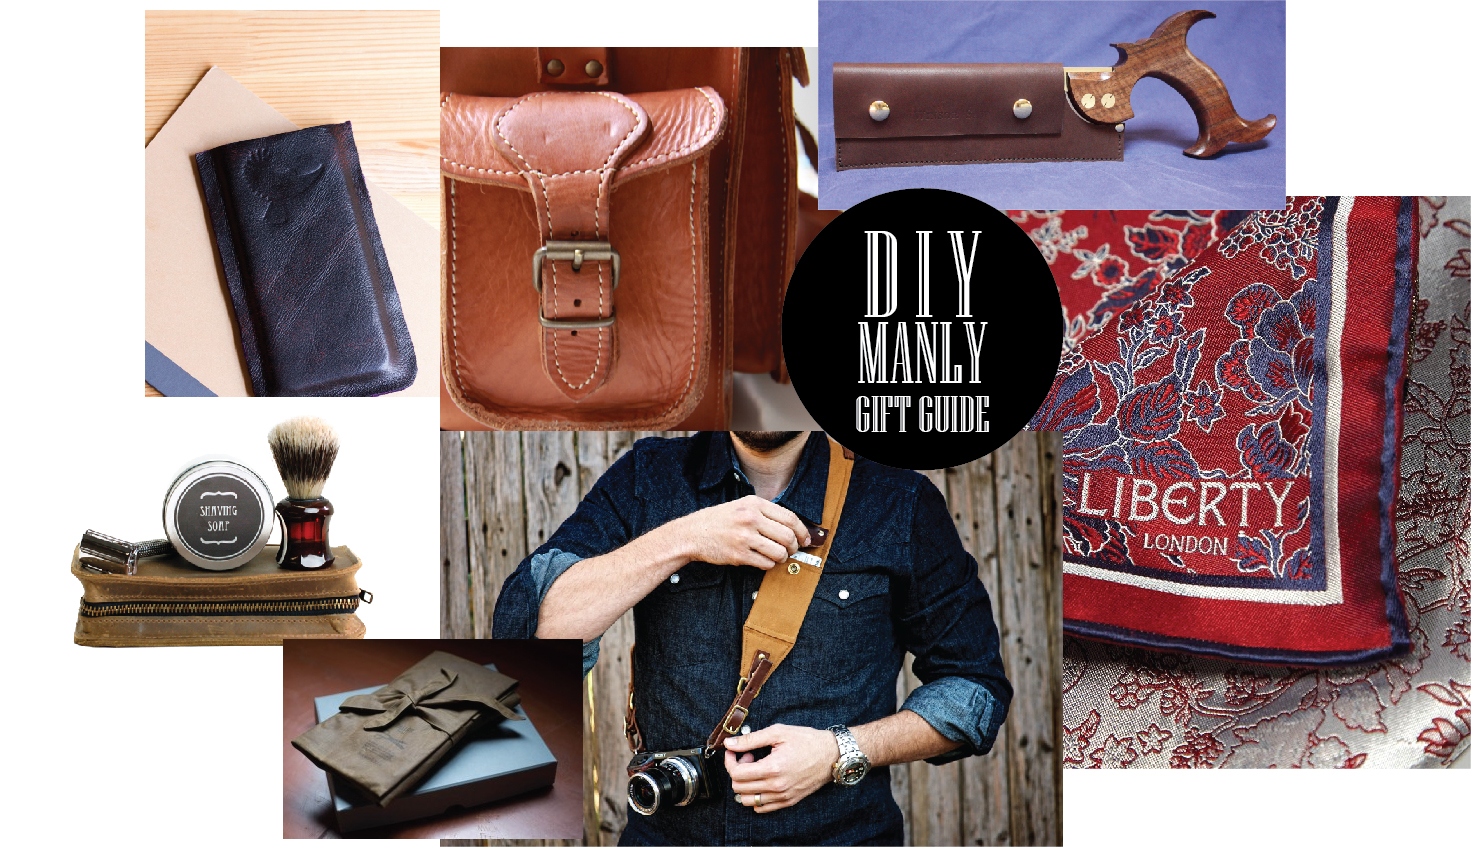 DIY Manly Gift Guide – Thread Theory